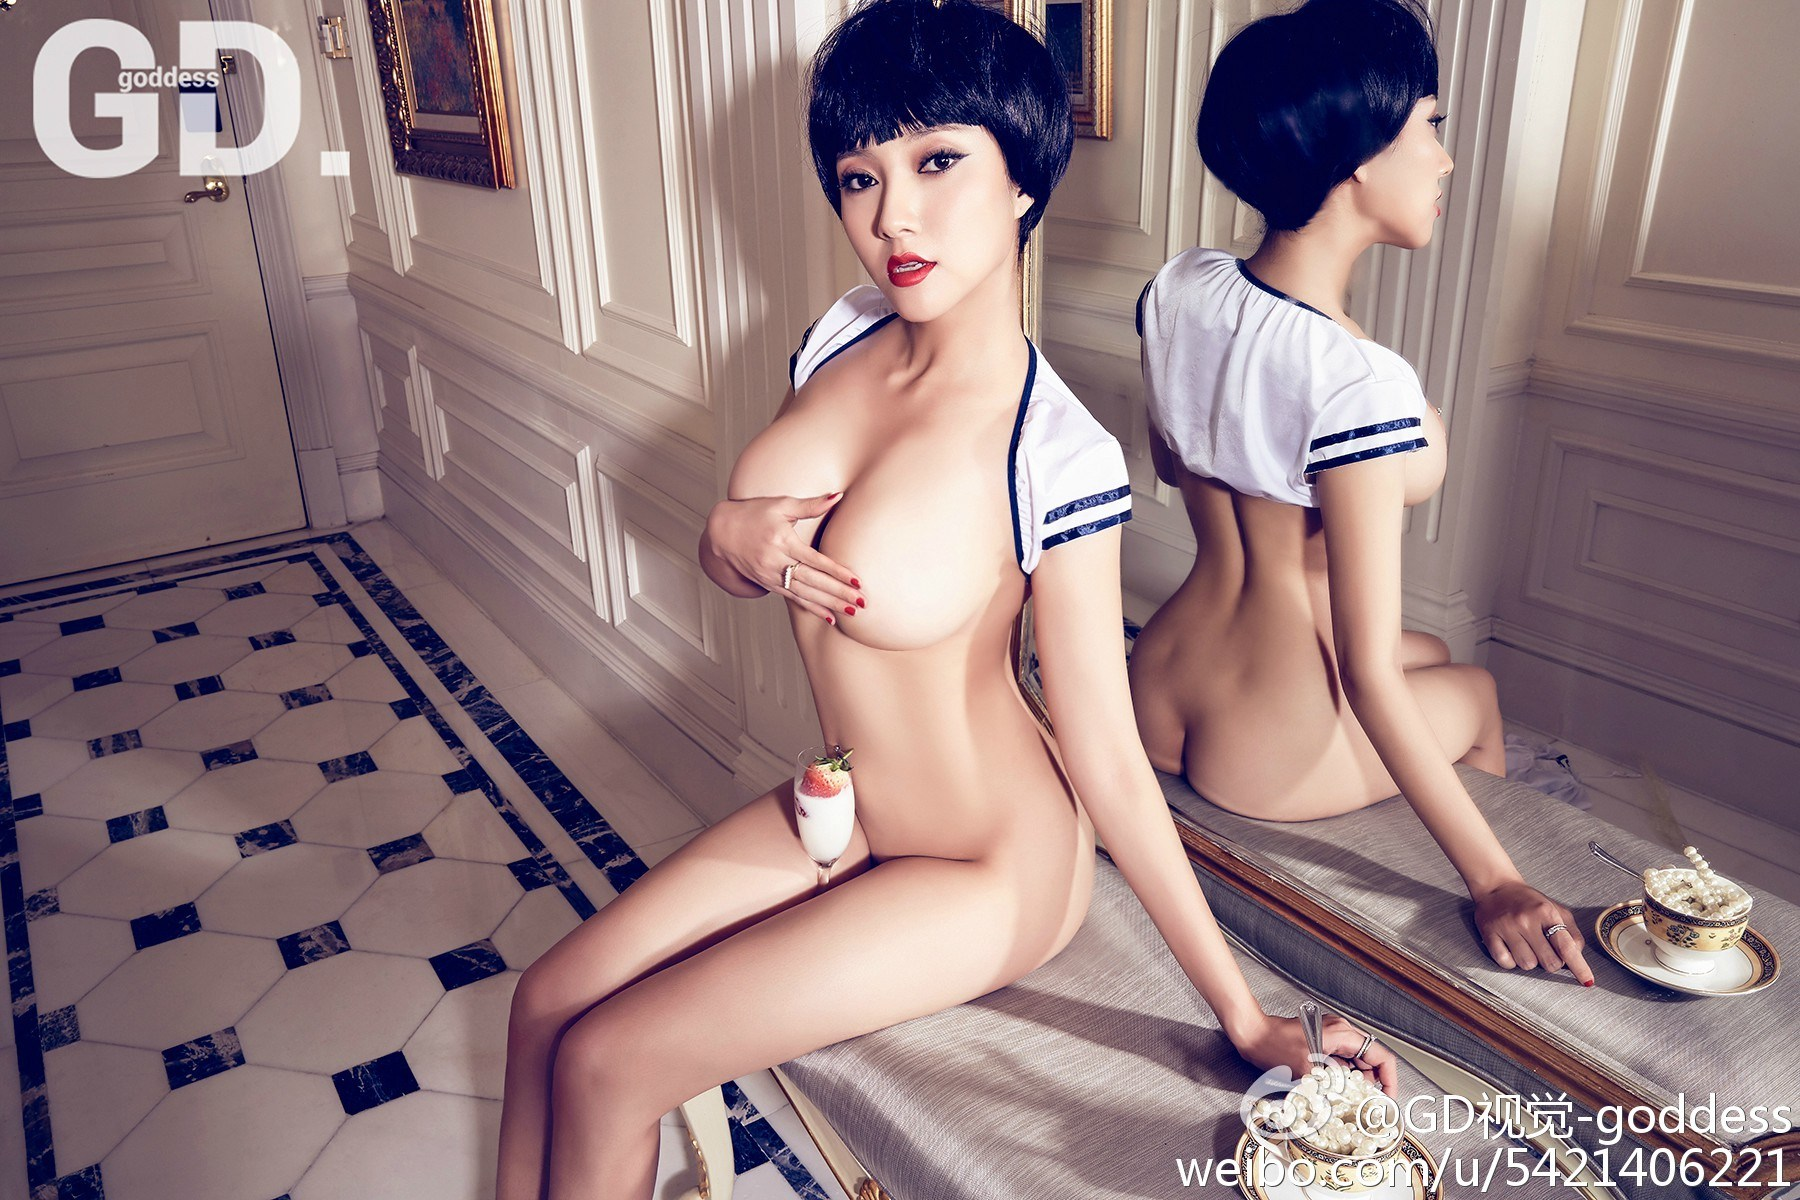 litu 100 archives: Busty Naked Thick Sex Slave Cosplay Chinese Model Song Guo Er 宋國洱